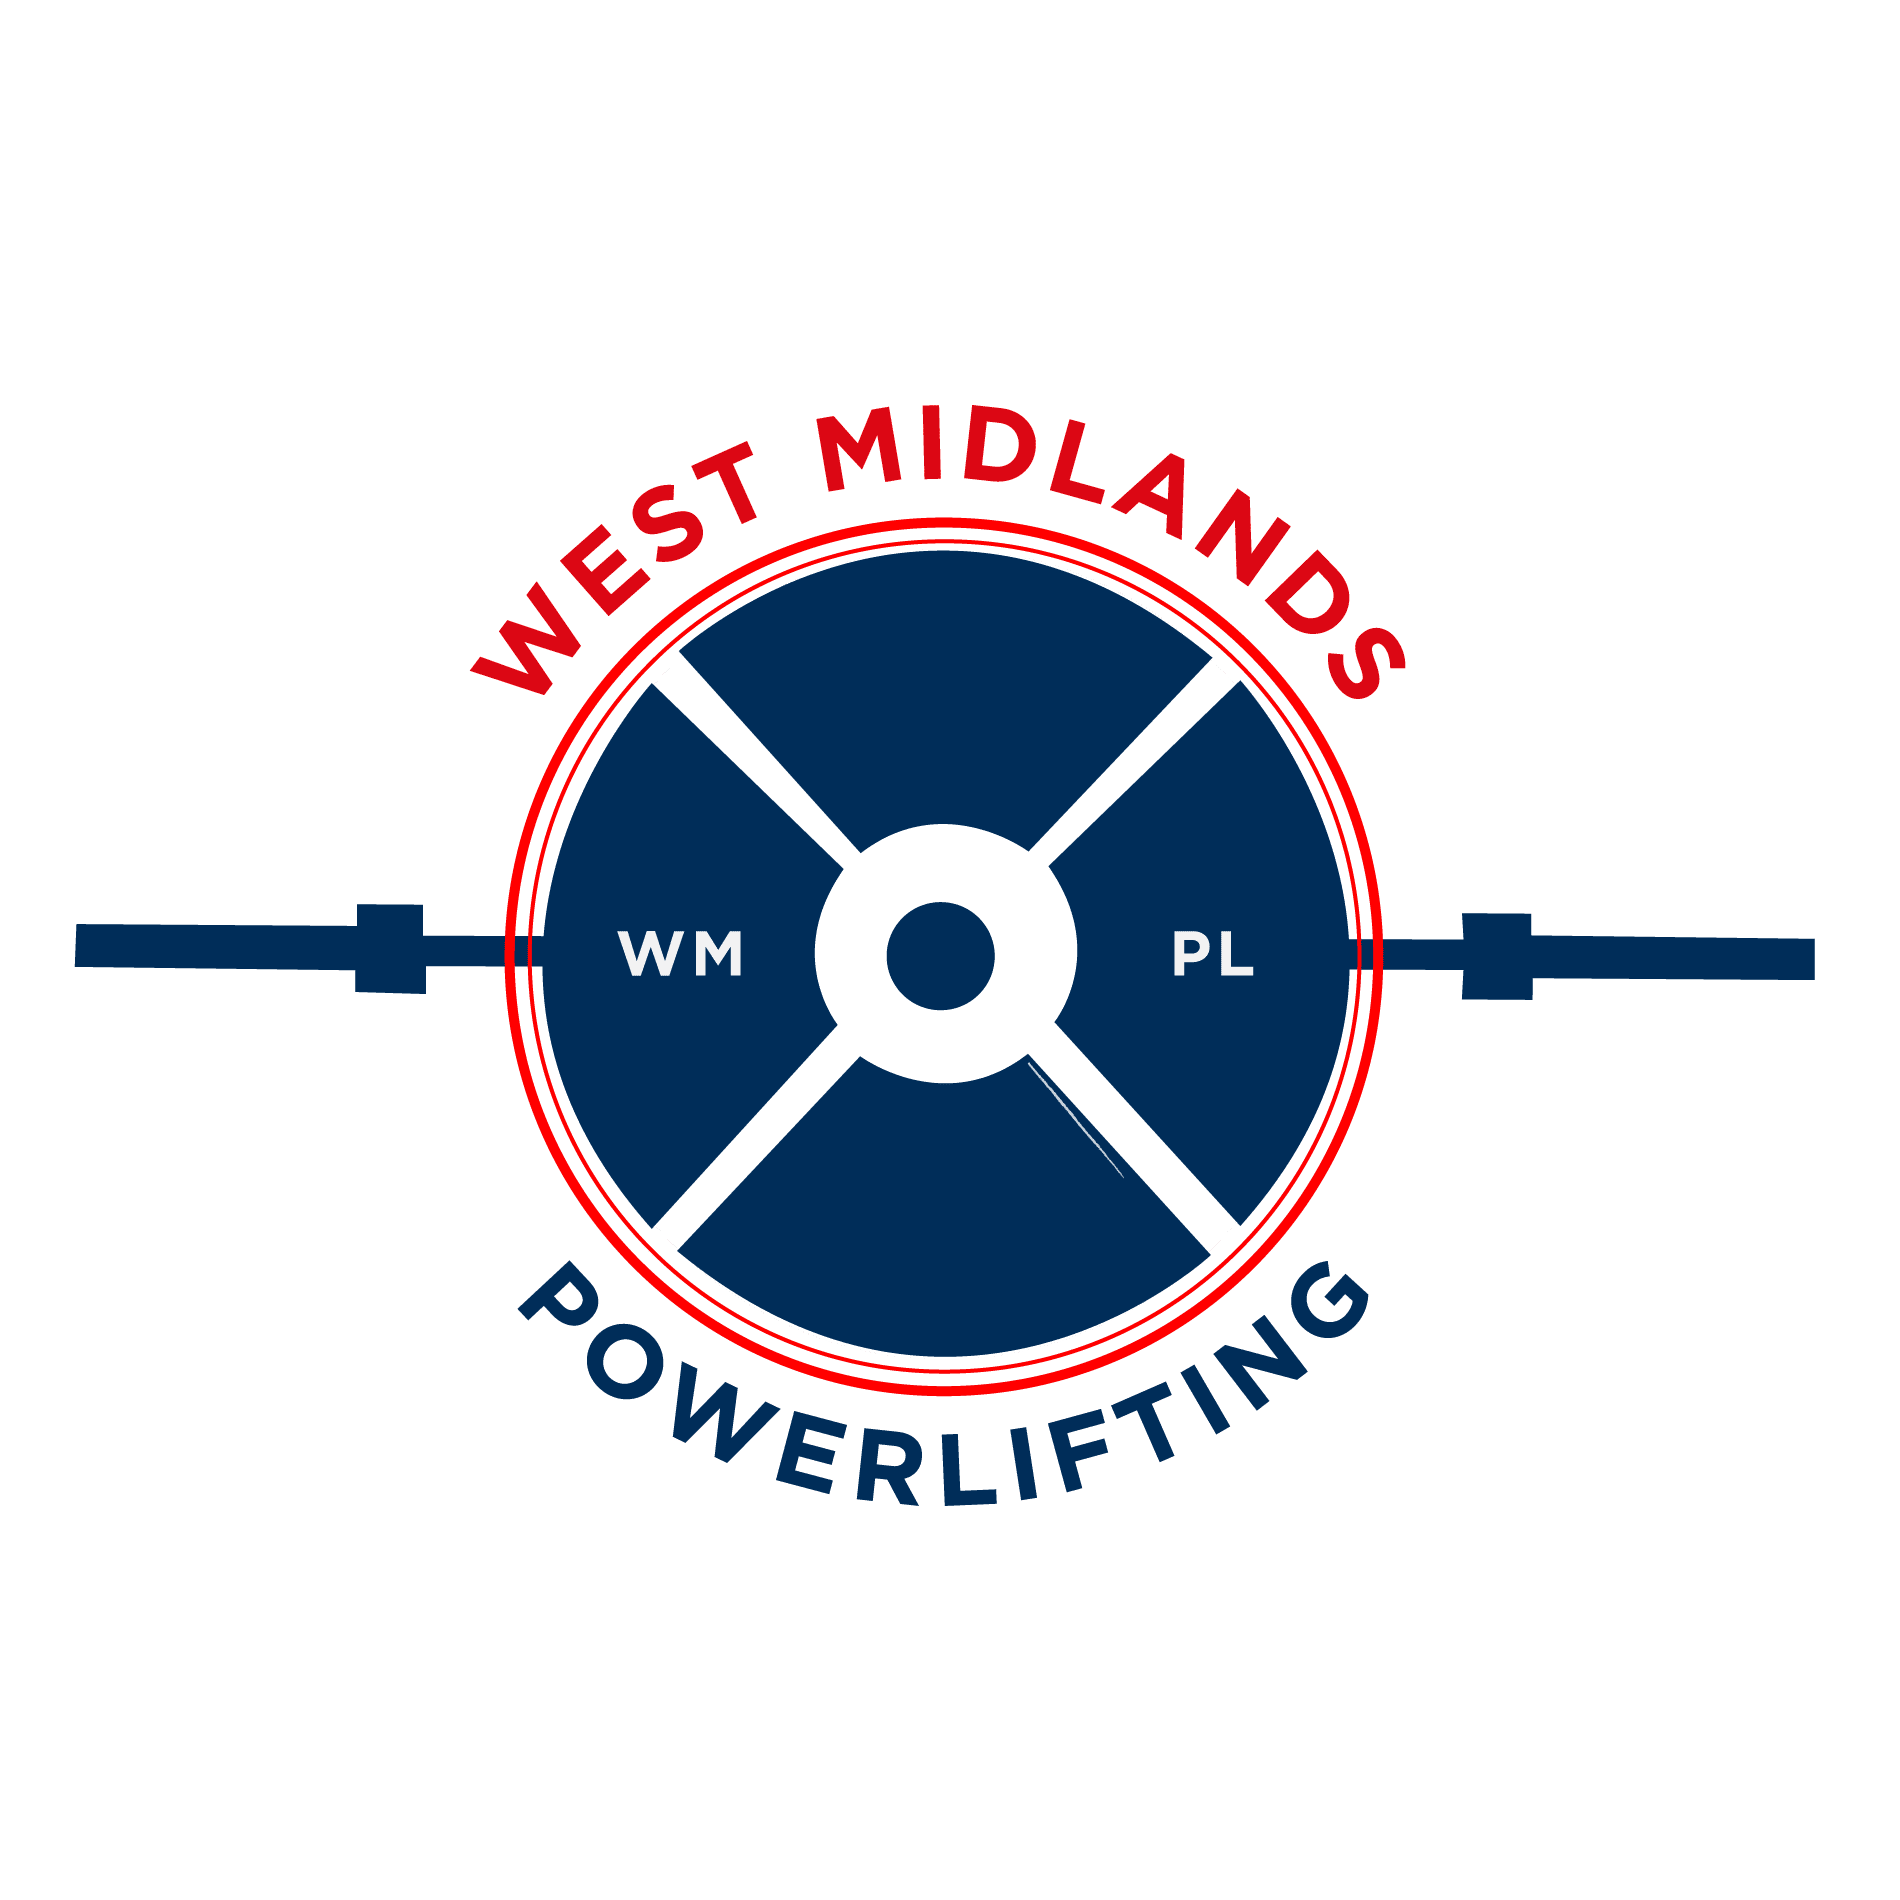 West Midlands Full Power and Bench Only Championships - 2